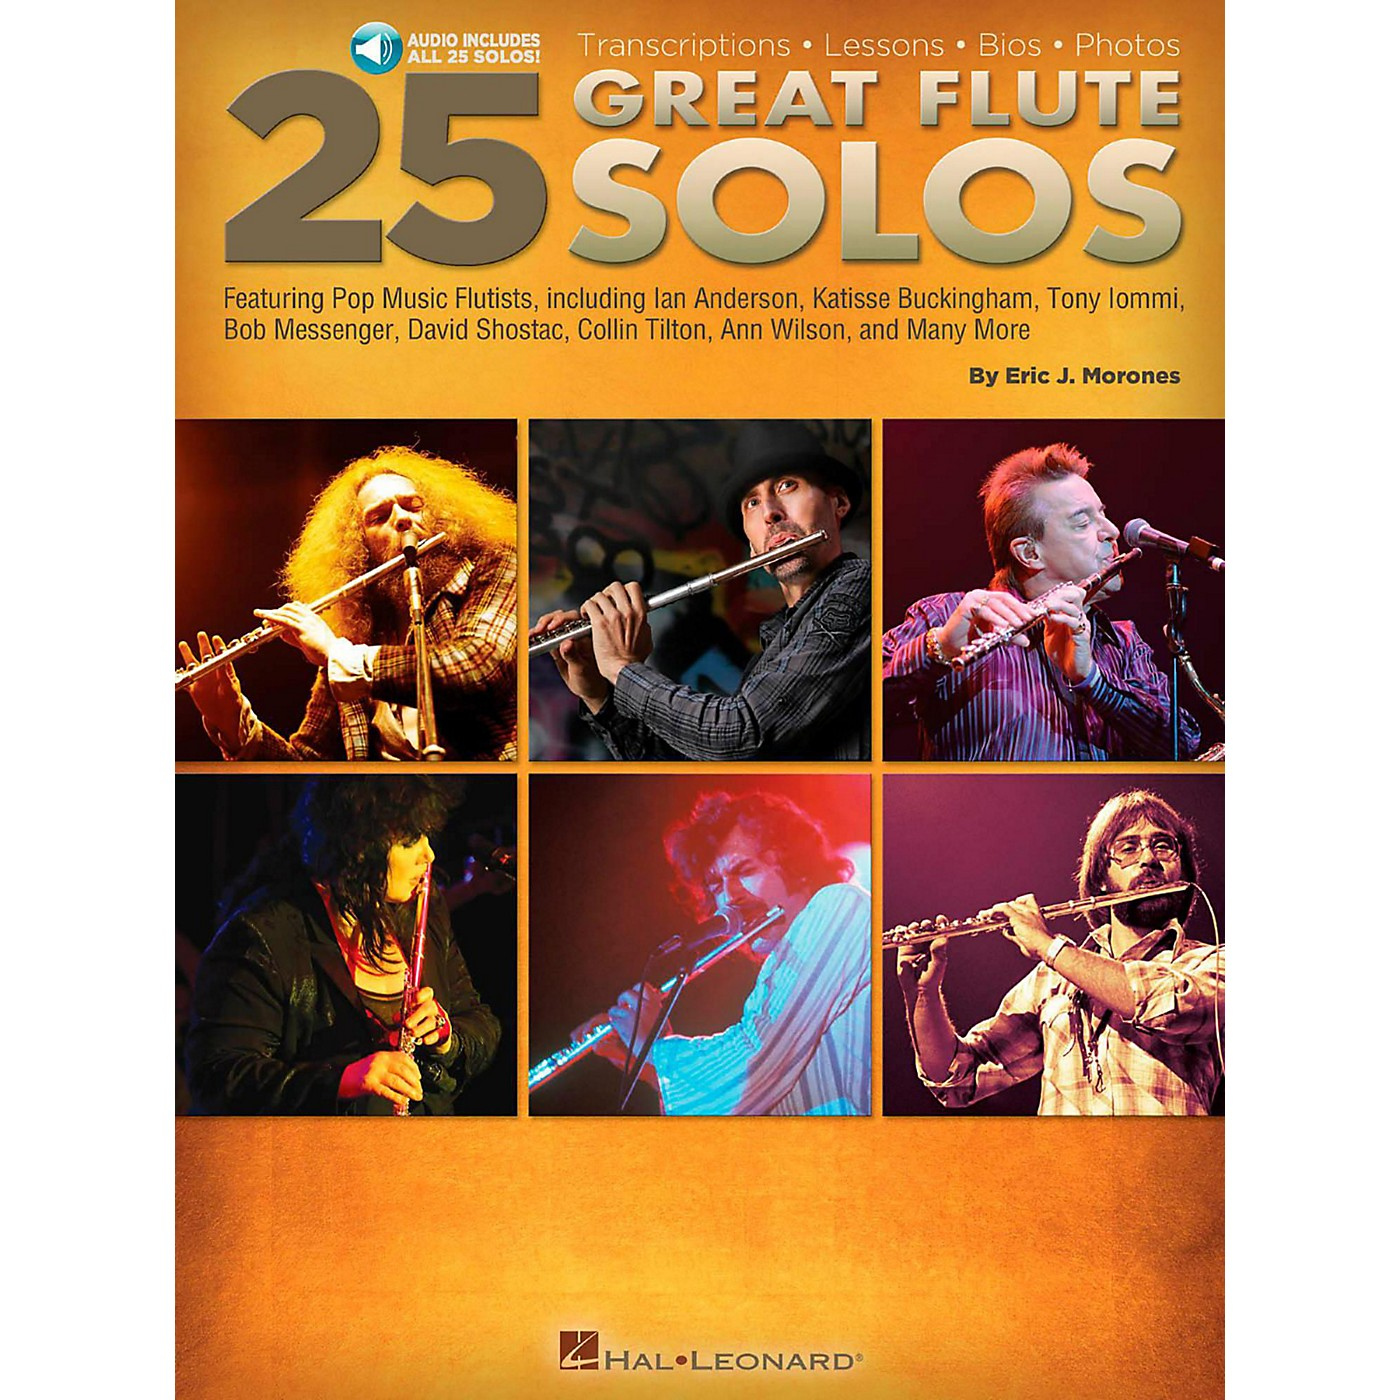 Hal Leonard 25 Great Flute Solos Book/Audio Online thumbnail